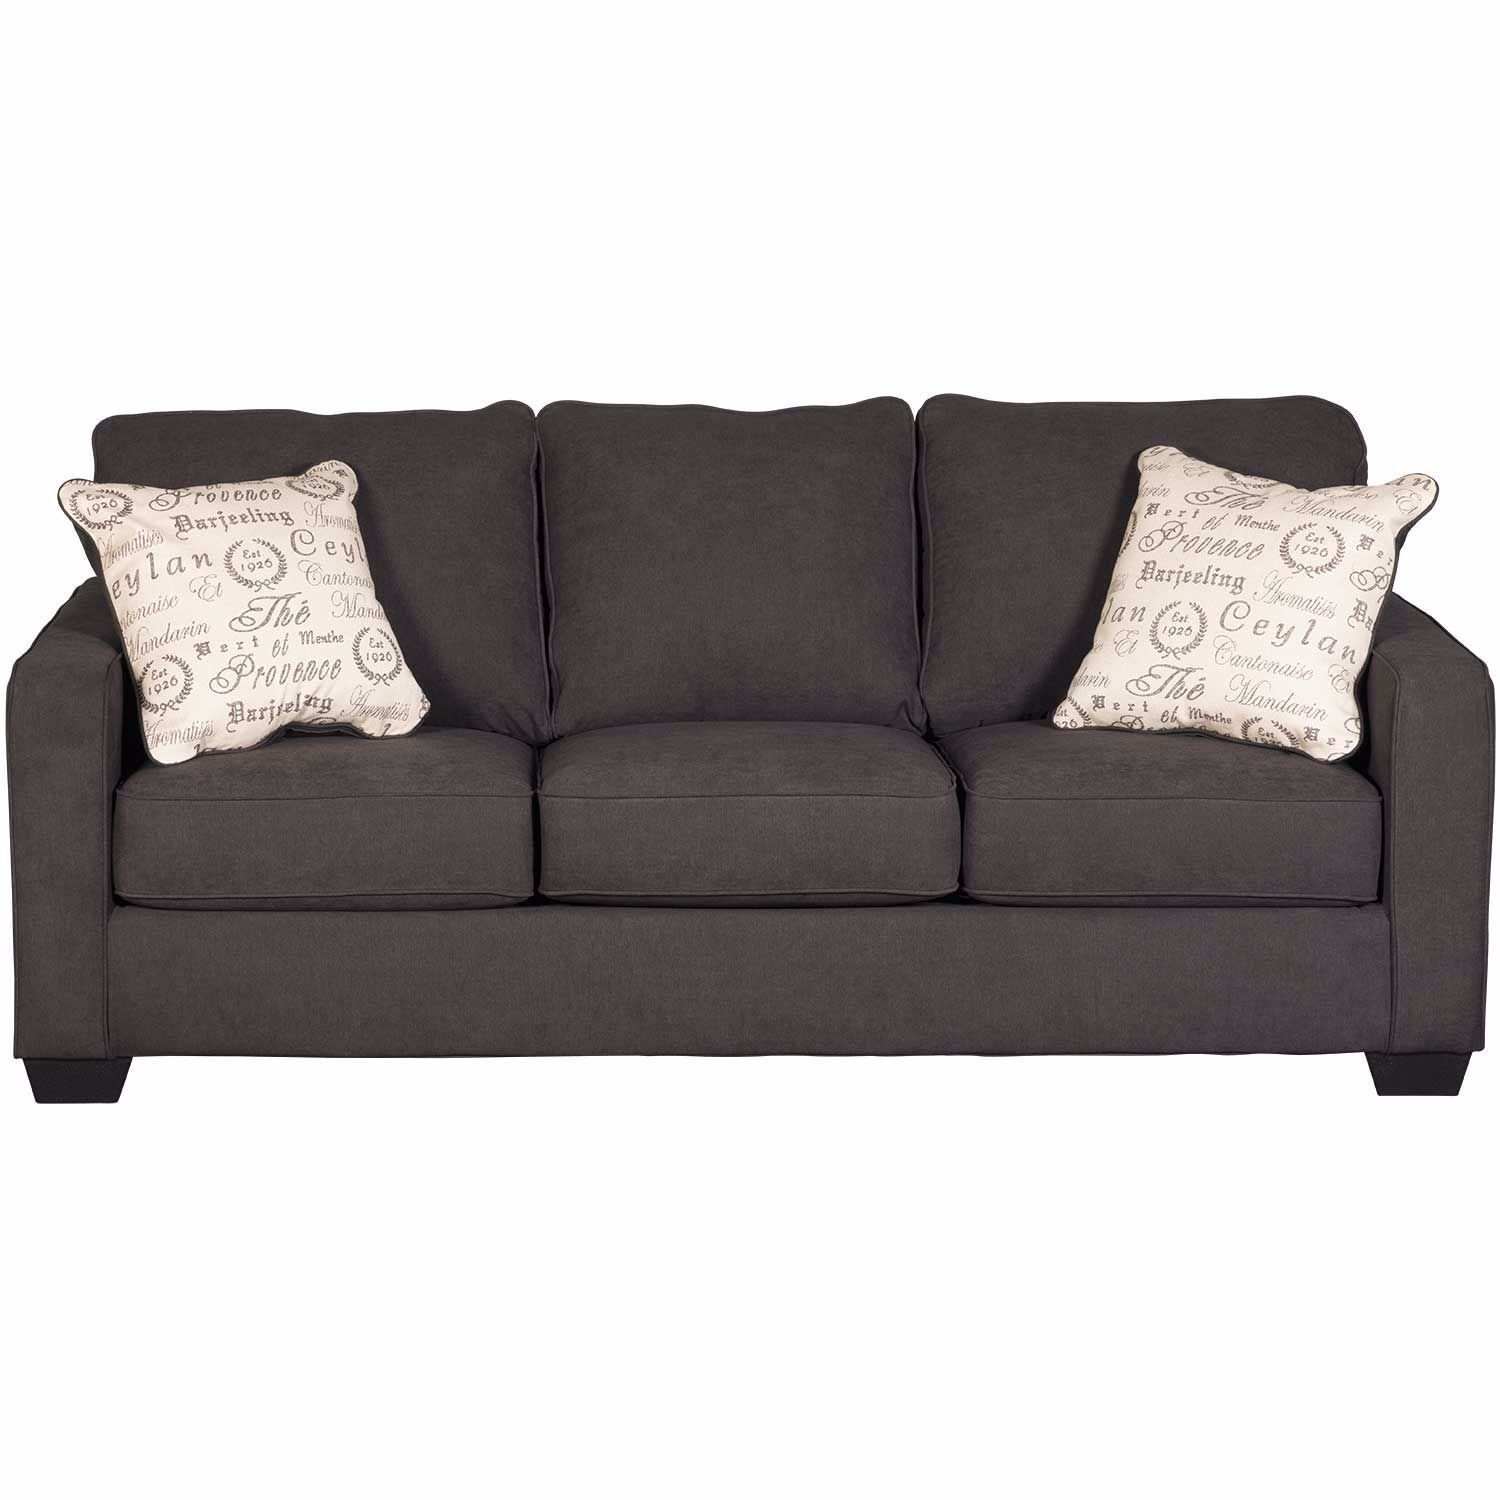 Charcoal Sofa Ashley Furniture Sofas